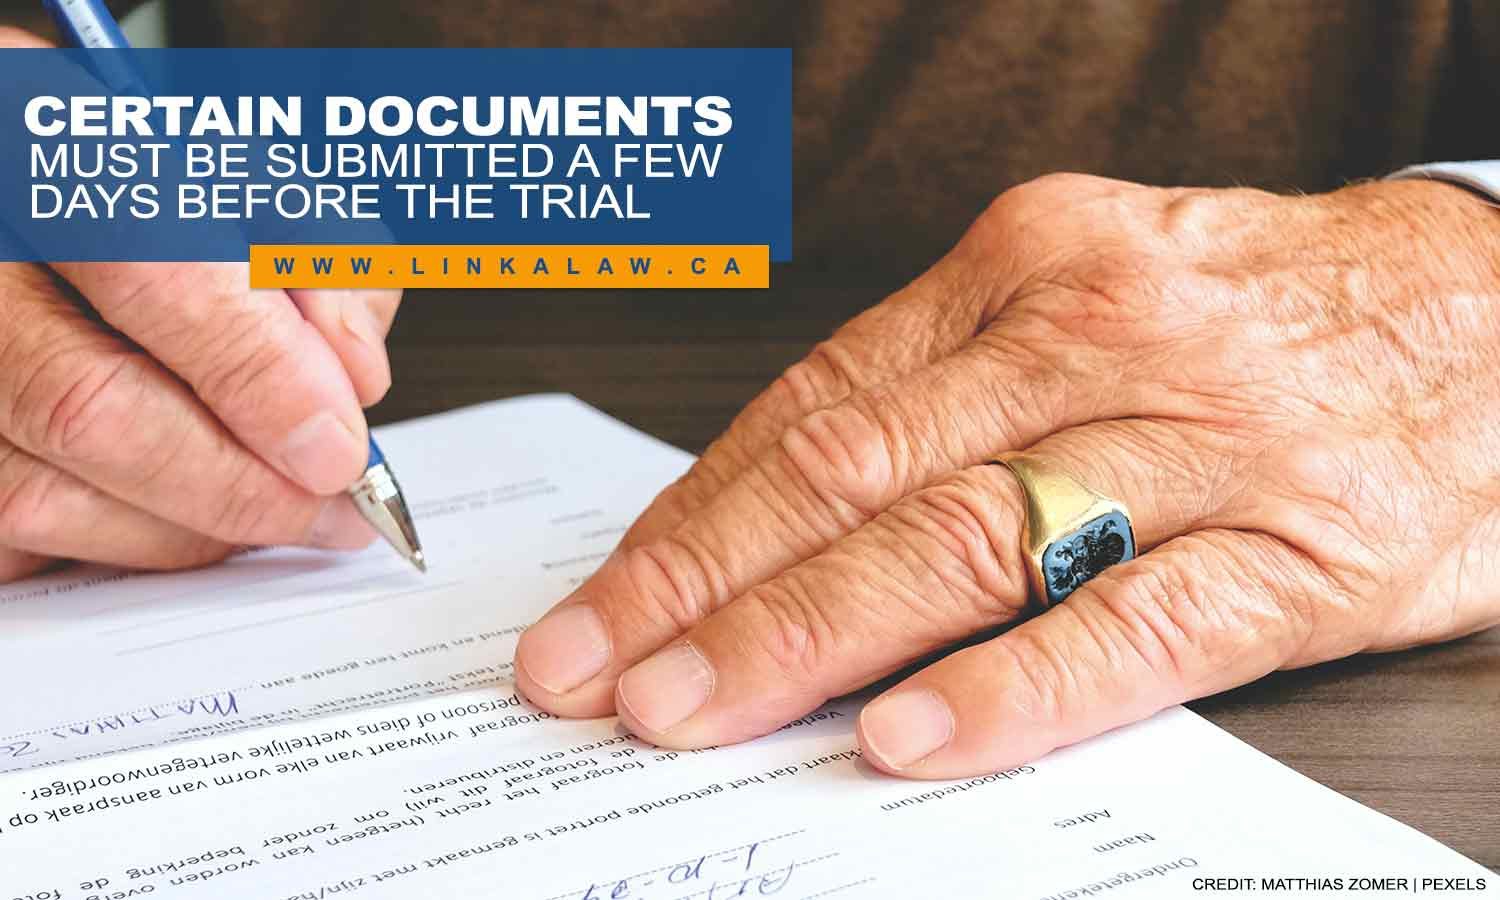 Certain documents must be submitted a few days before the trial